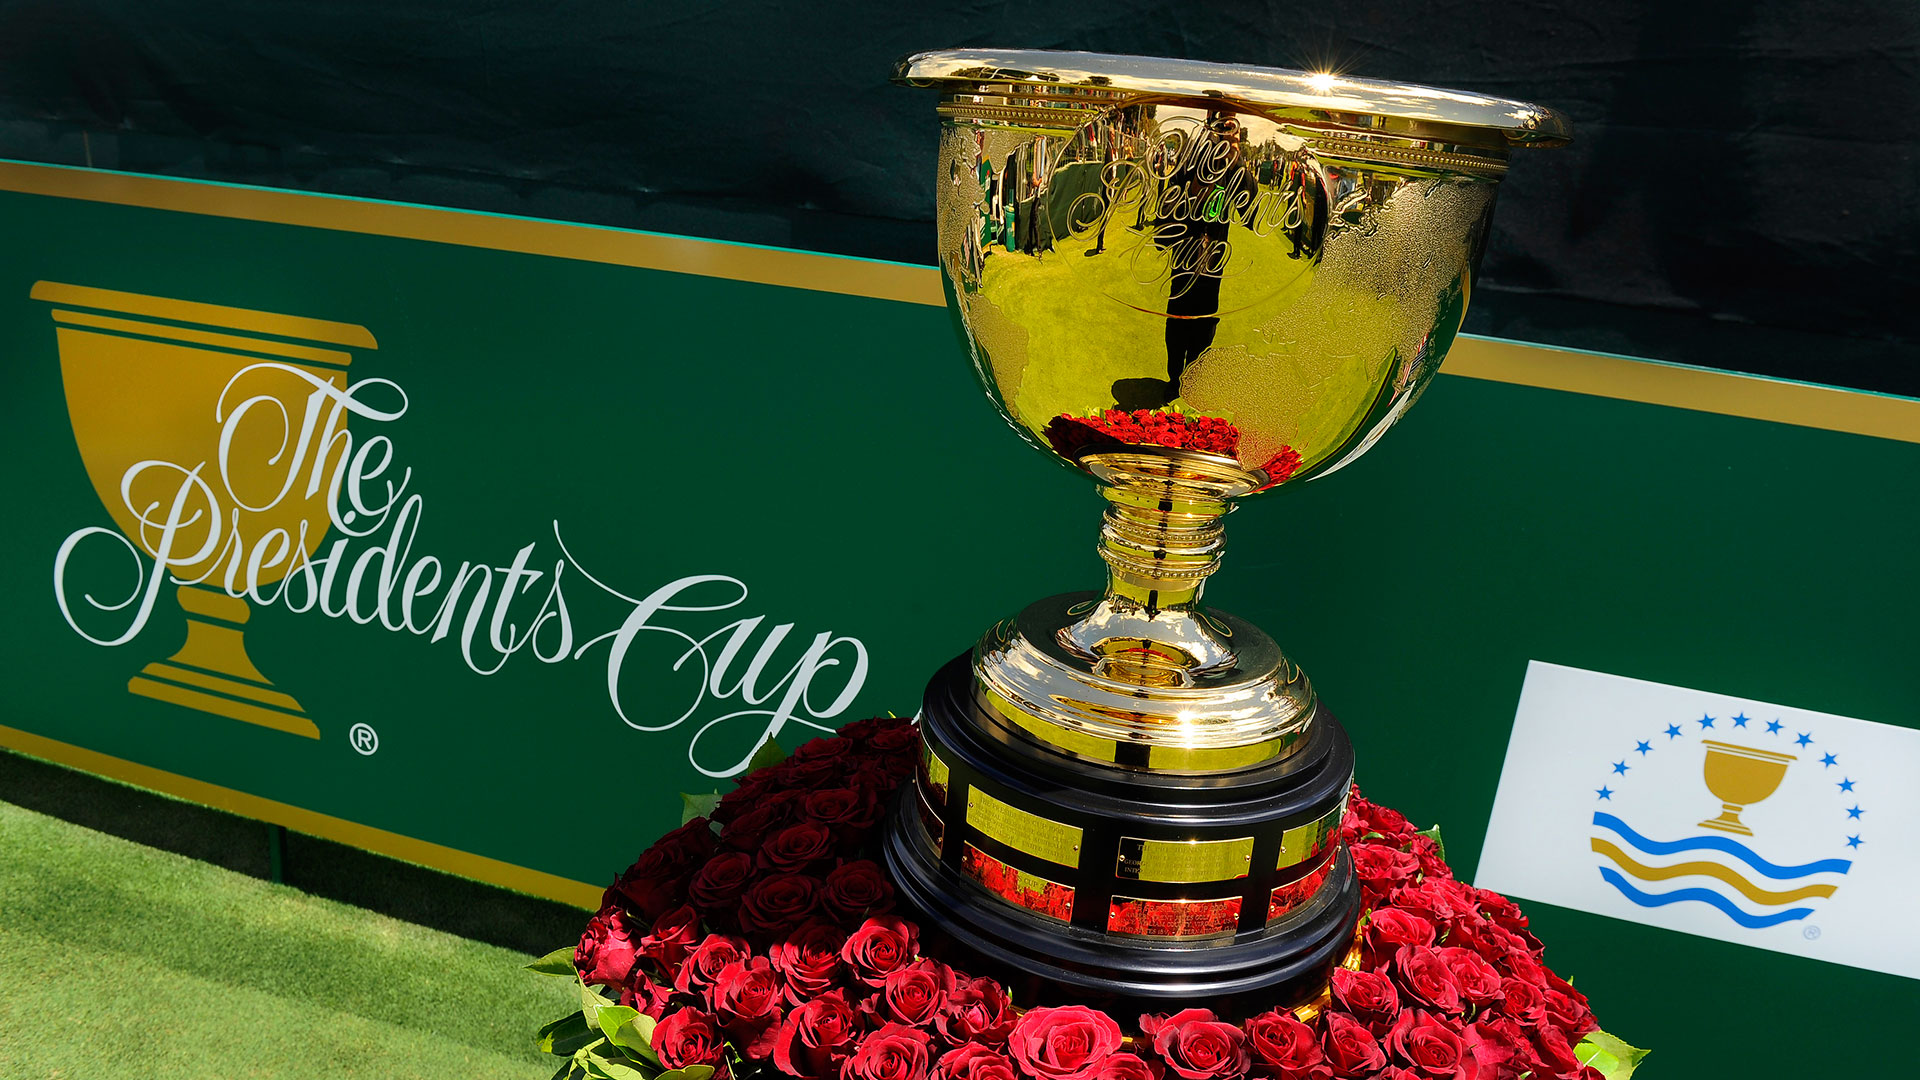 presidents cup - photo #26